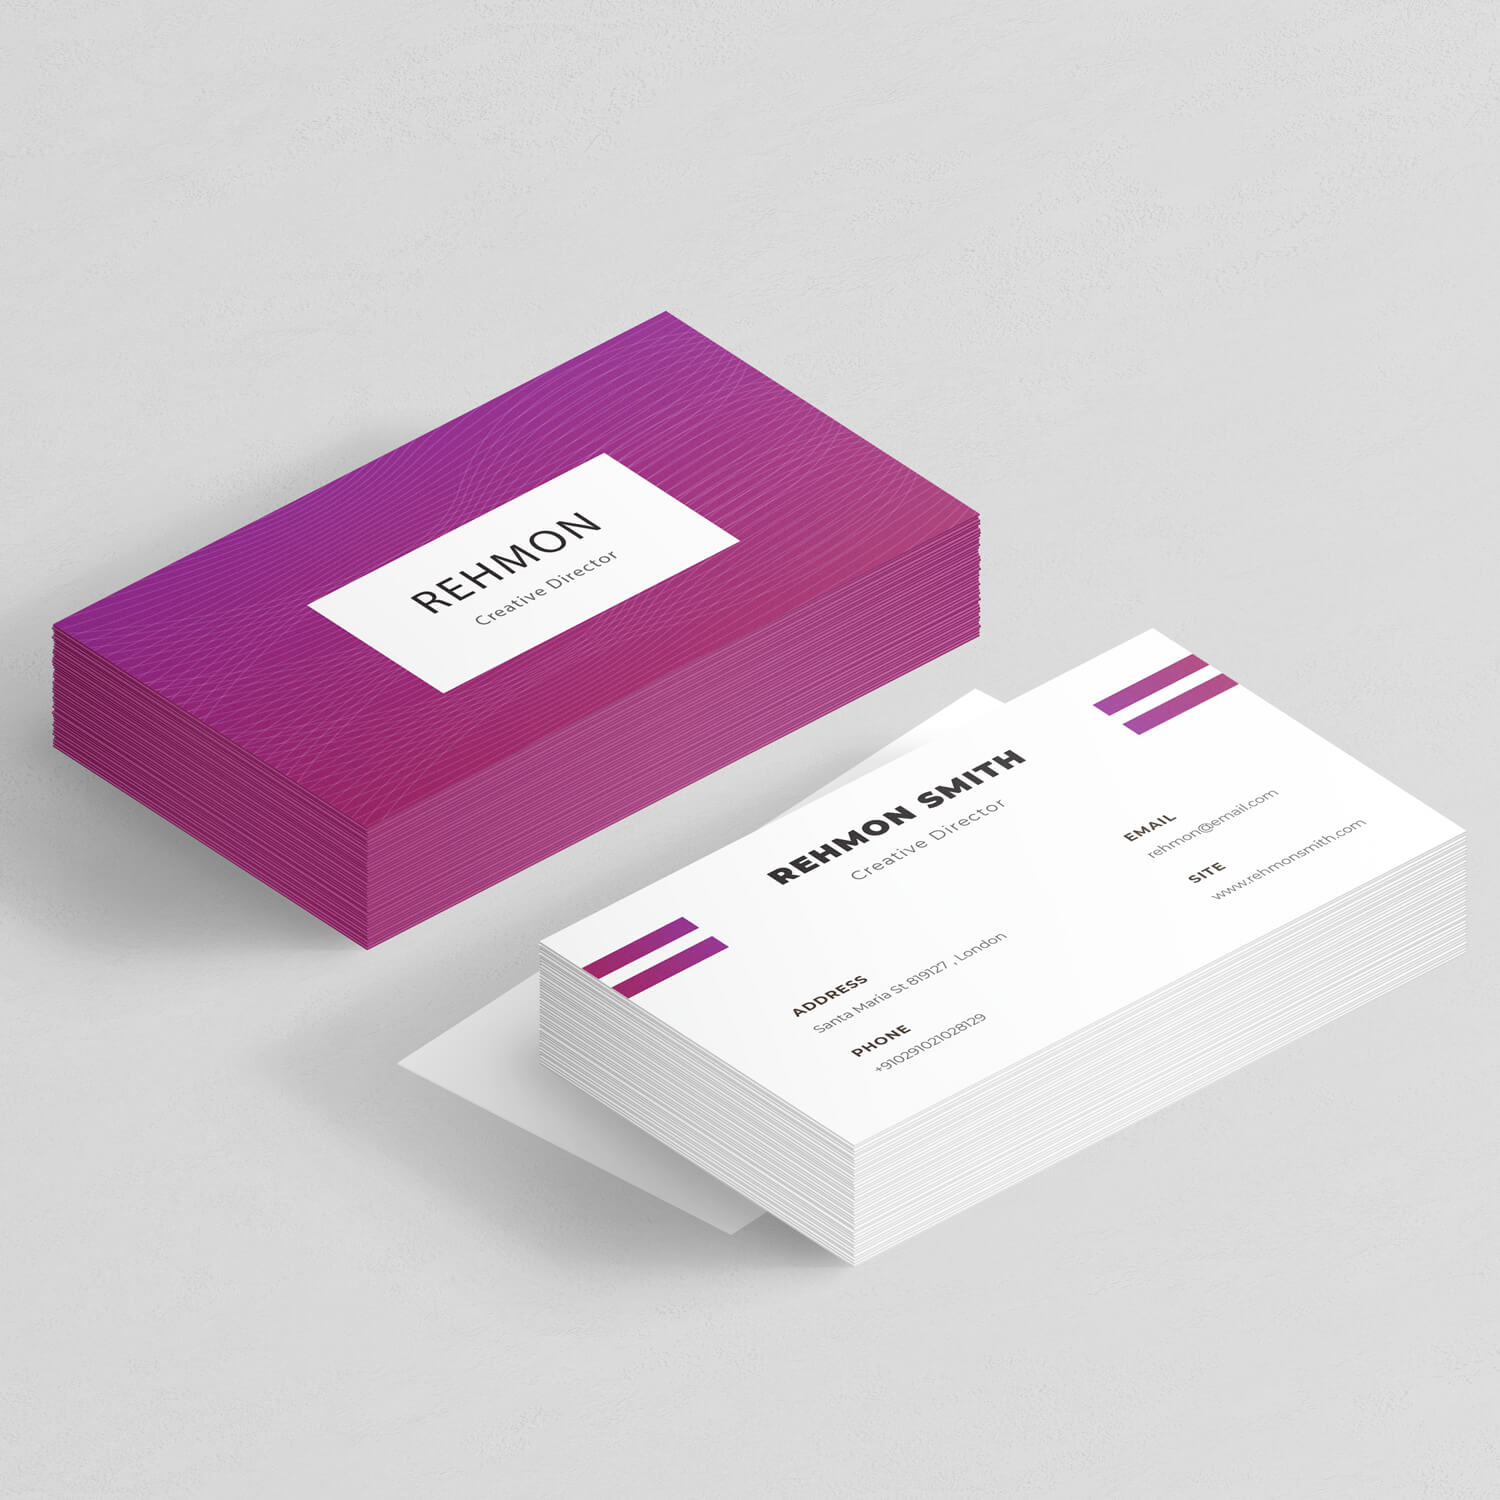 Rehmon – Business Card design